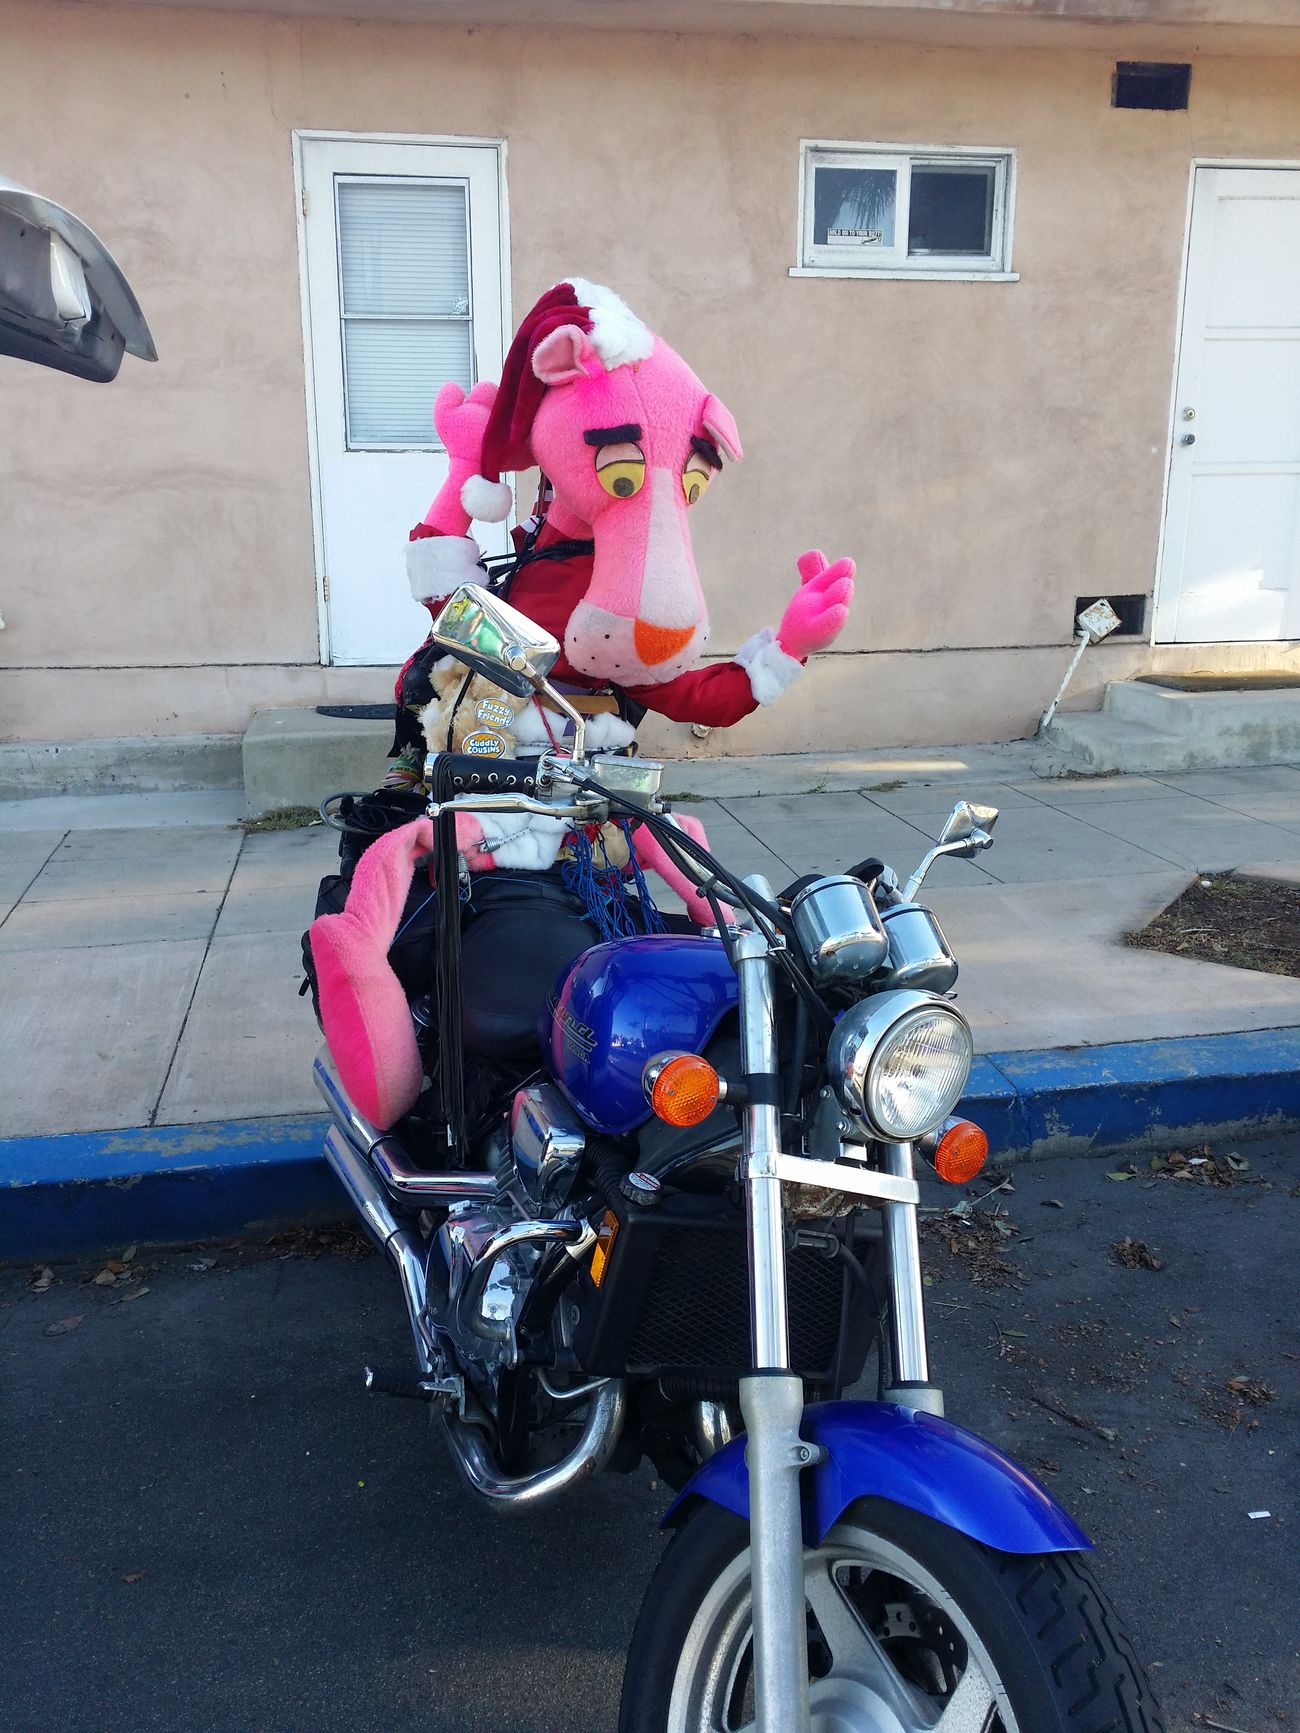 Pink panther on a ride and now going to bed until next year Outdoors MotorcycleStories Motorcyclelifestyle Motorcycle Photography Pink Oanter Rides Again Honda Bike With Pink Panther Biker Pink On The Road Pink Panther On The Bike Motorcycle Pink Panther Motorcycles Lover Jonhson And Johnson Donation Collection Special Effects Adopt To Save A Life